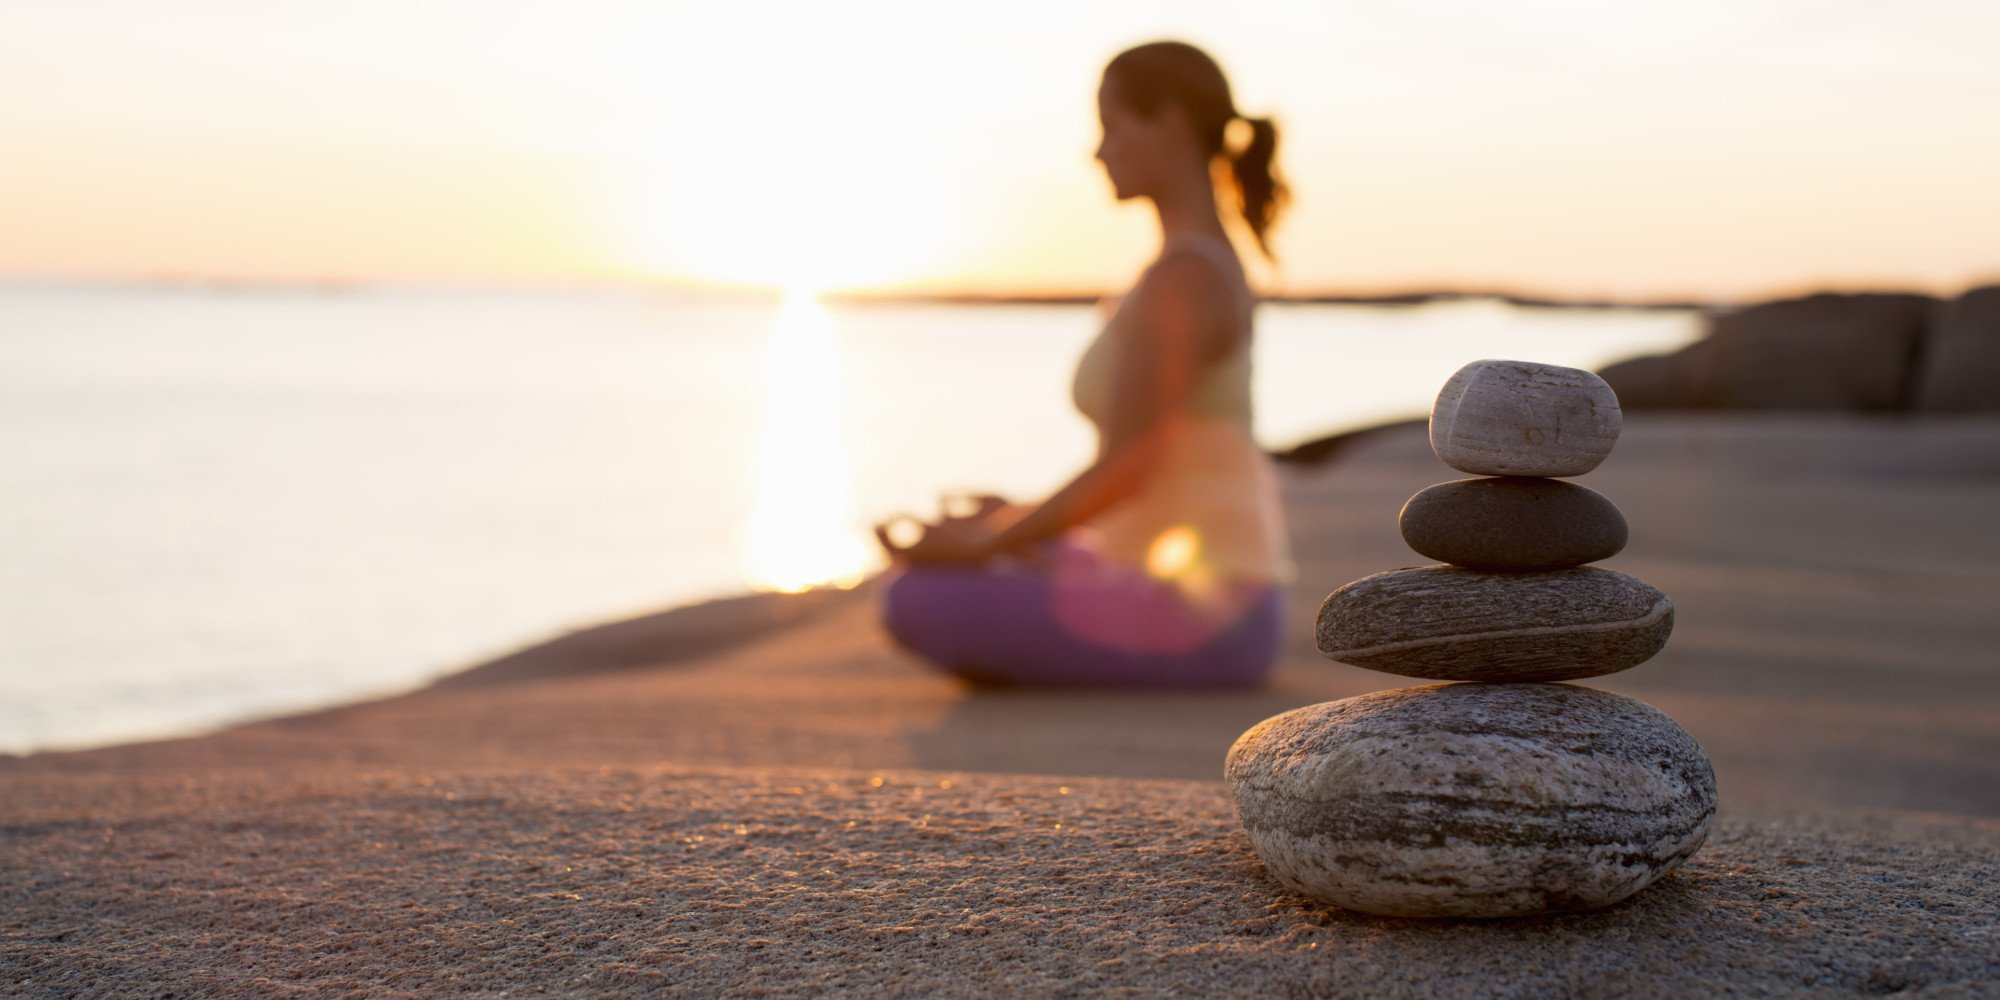 5-Ways-in-Which-Meditation-Helps-the-Brain-and-Body.jpg